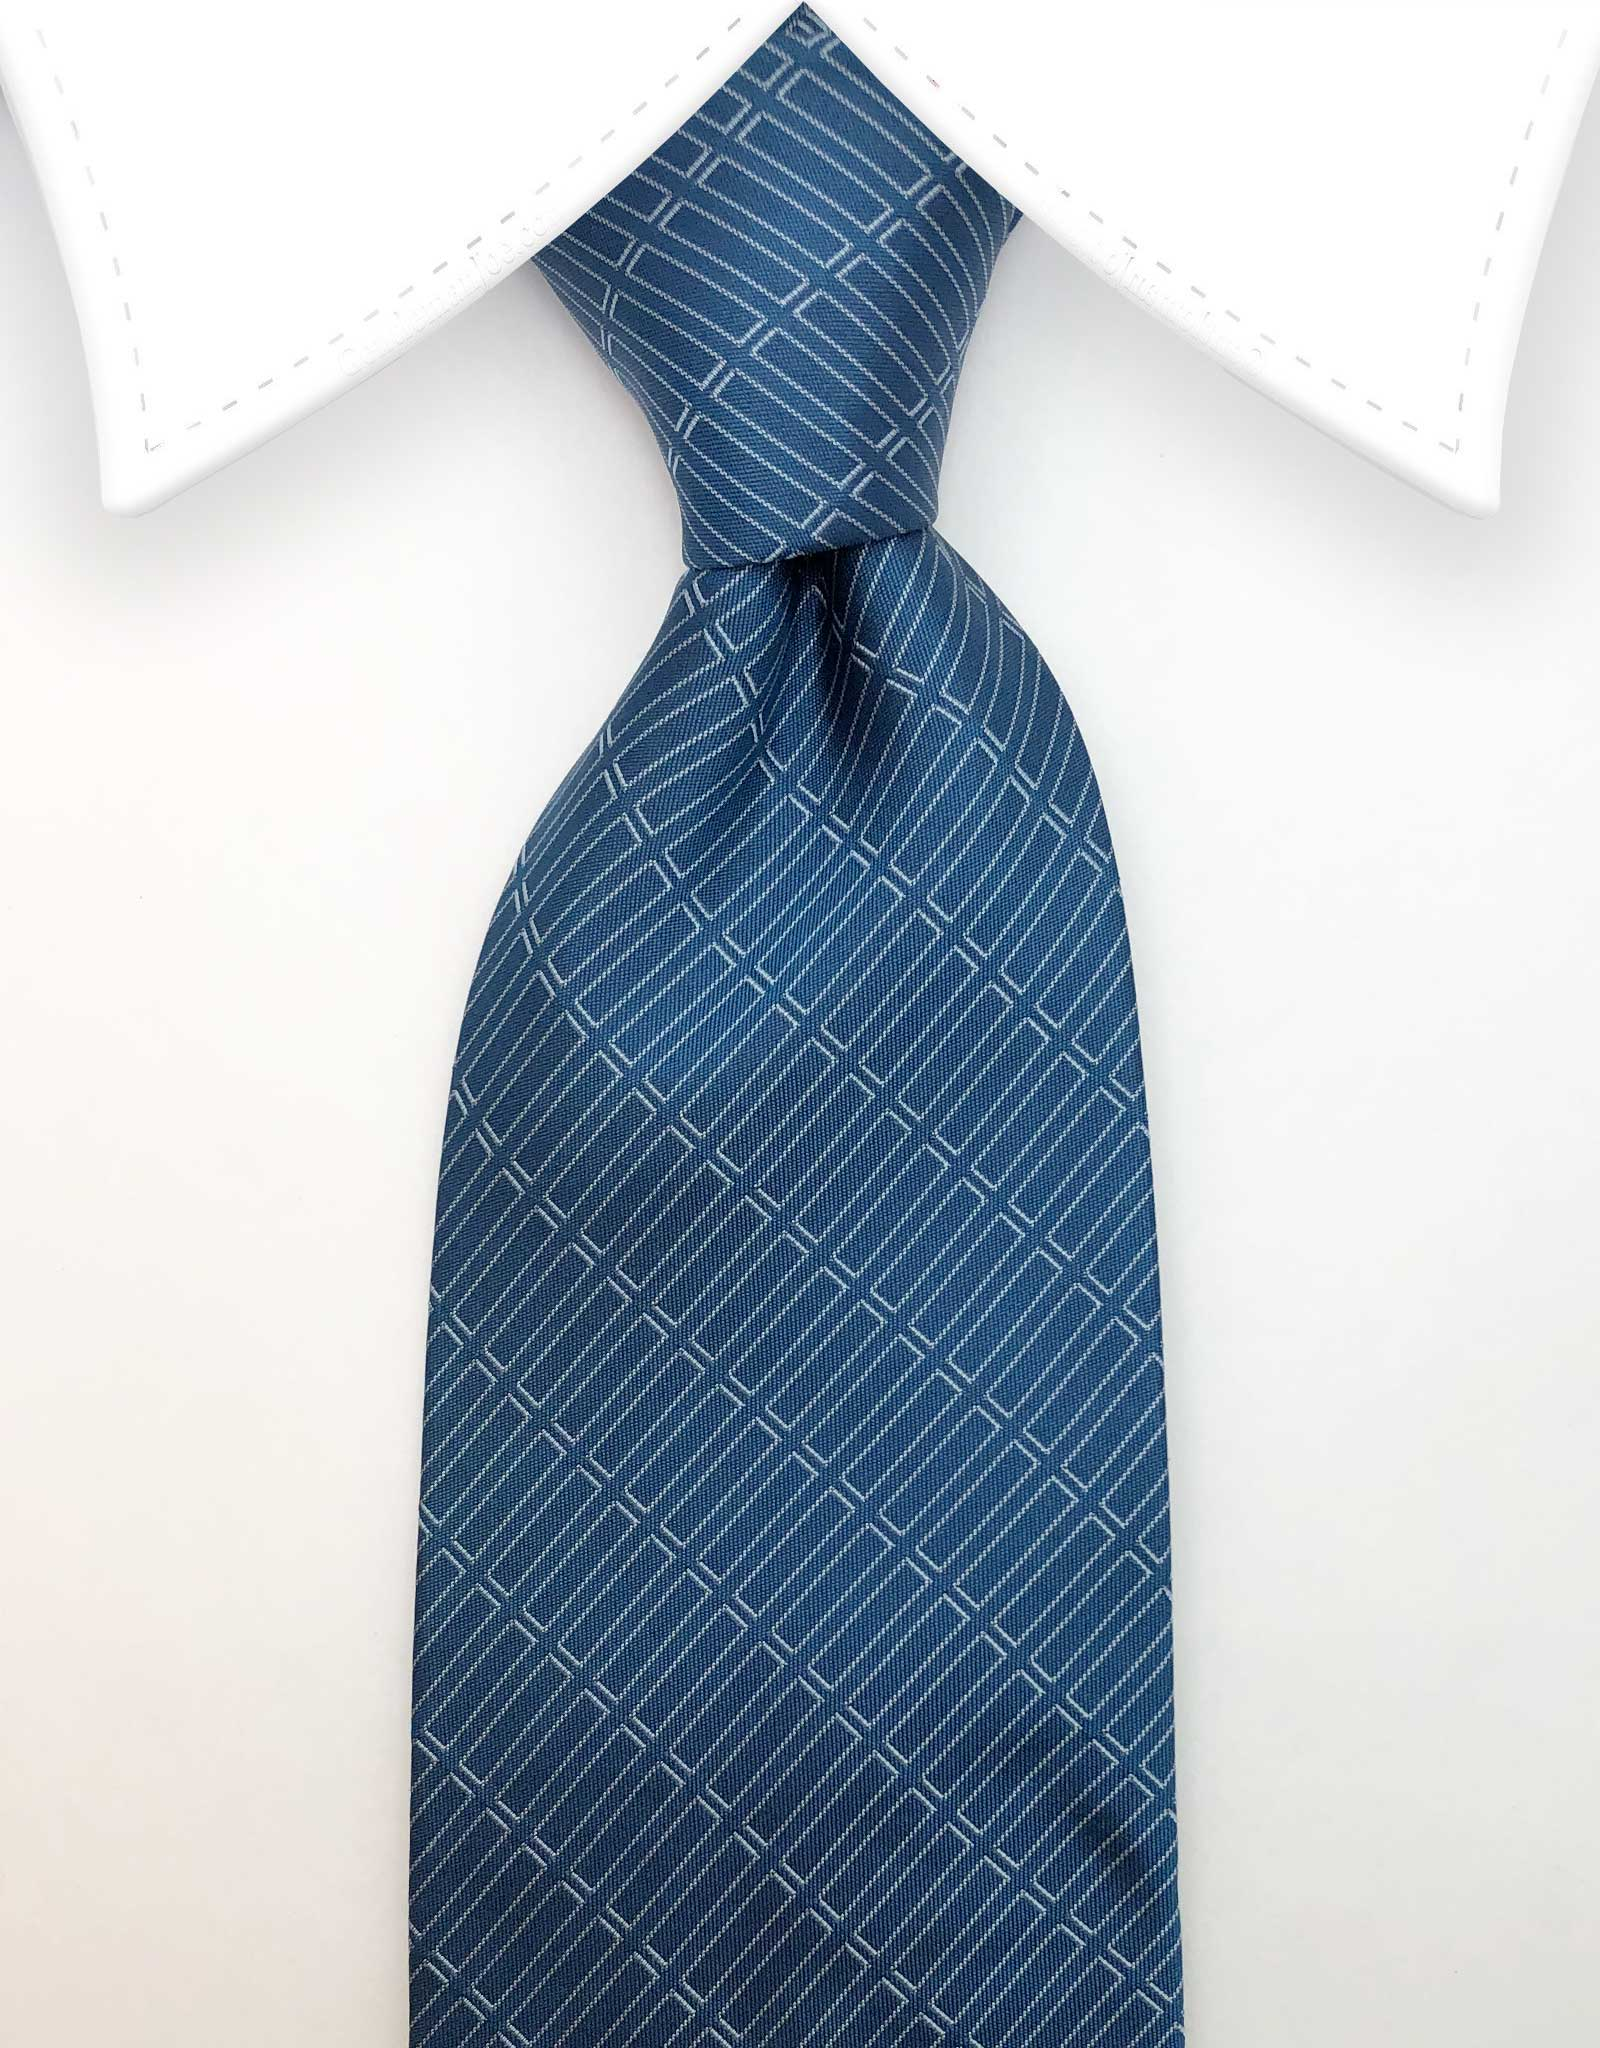 Teal blue ties